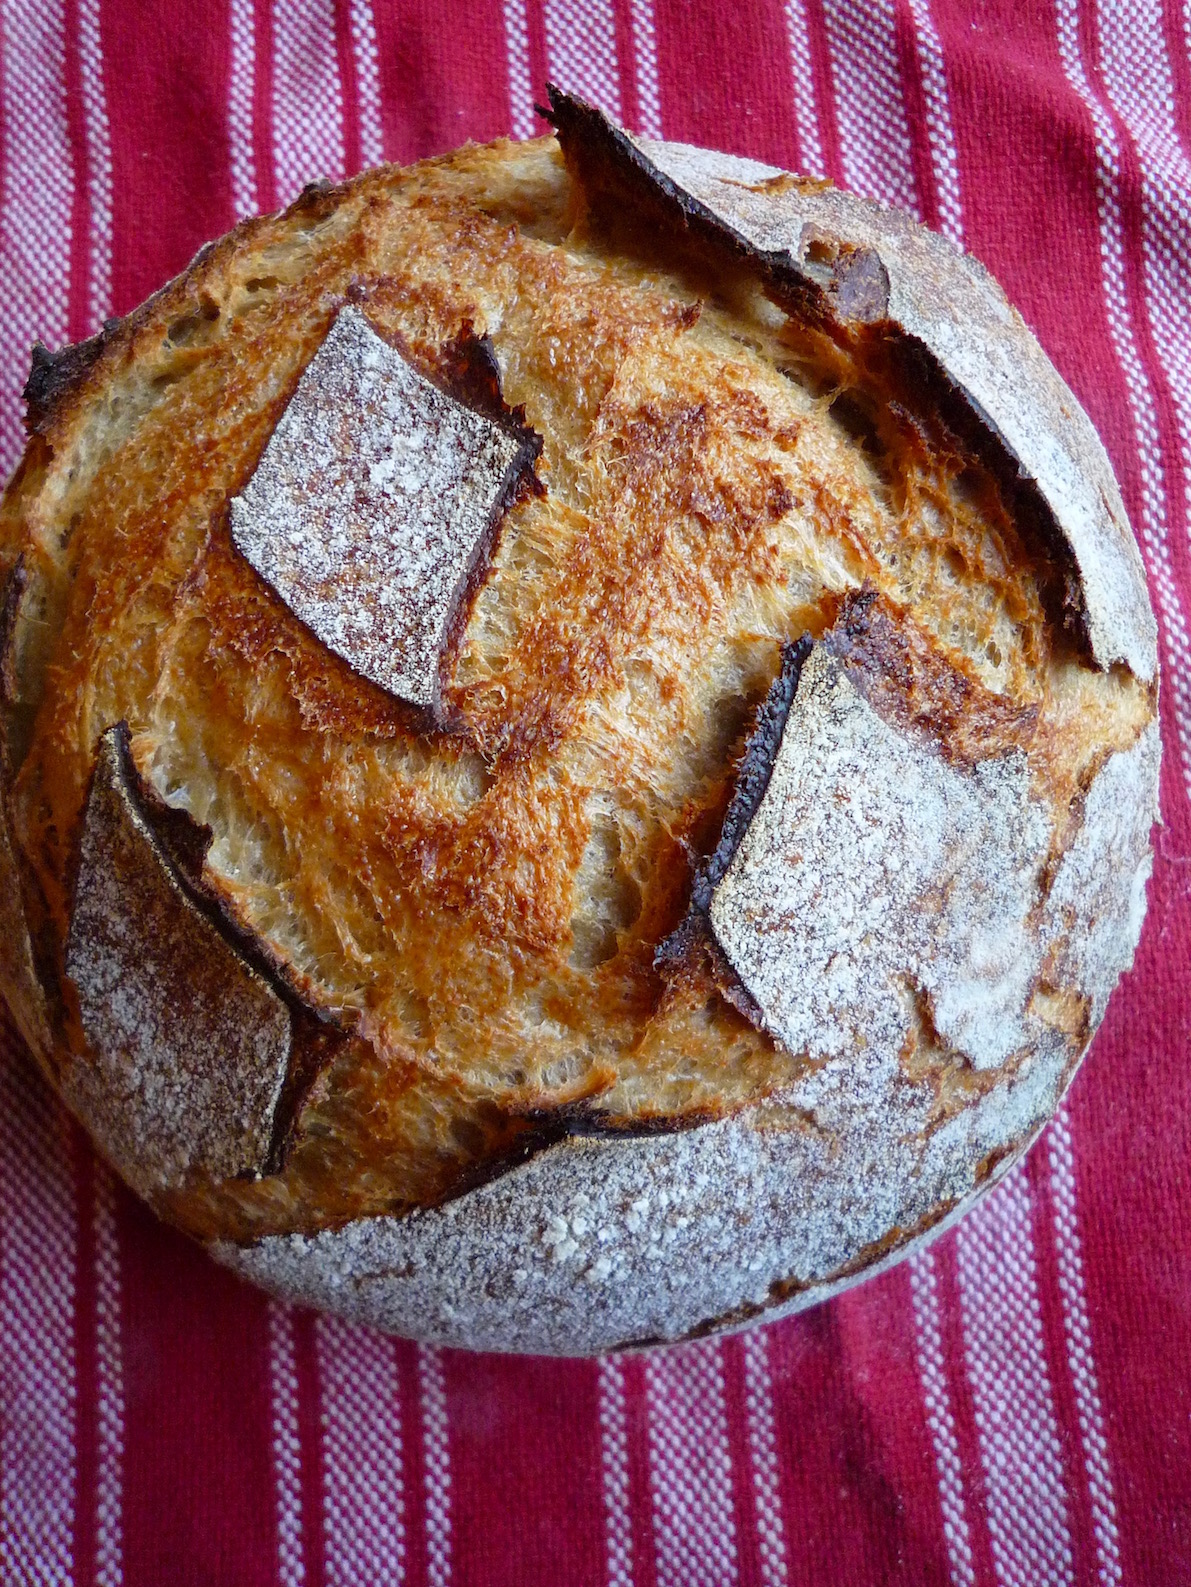 fig. f:  Magog country loaf finished